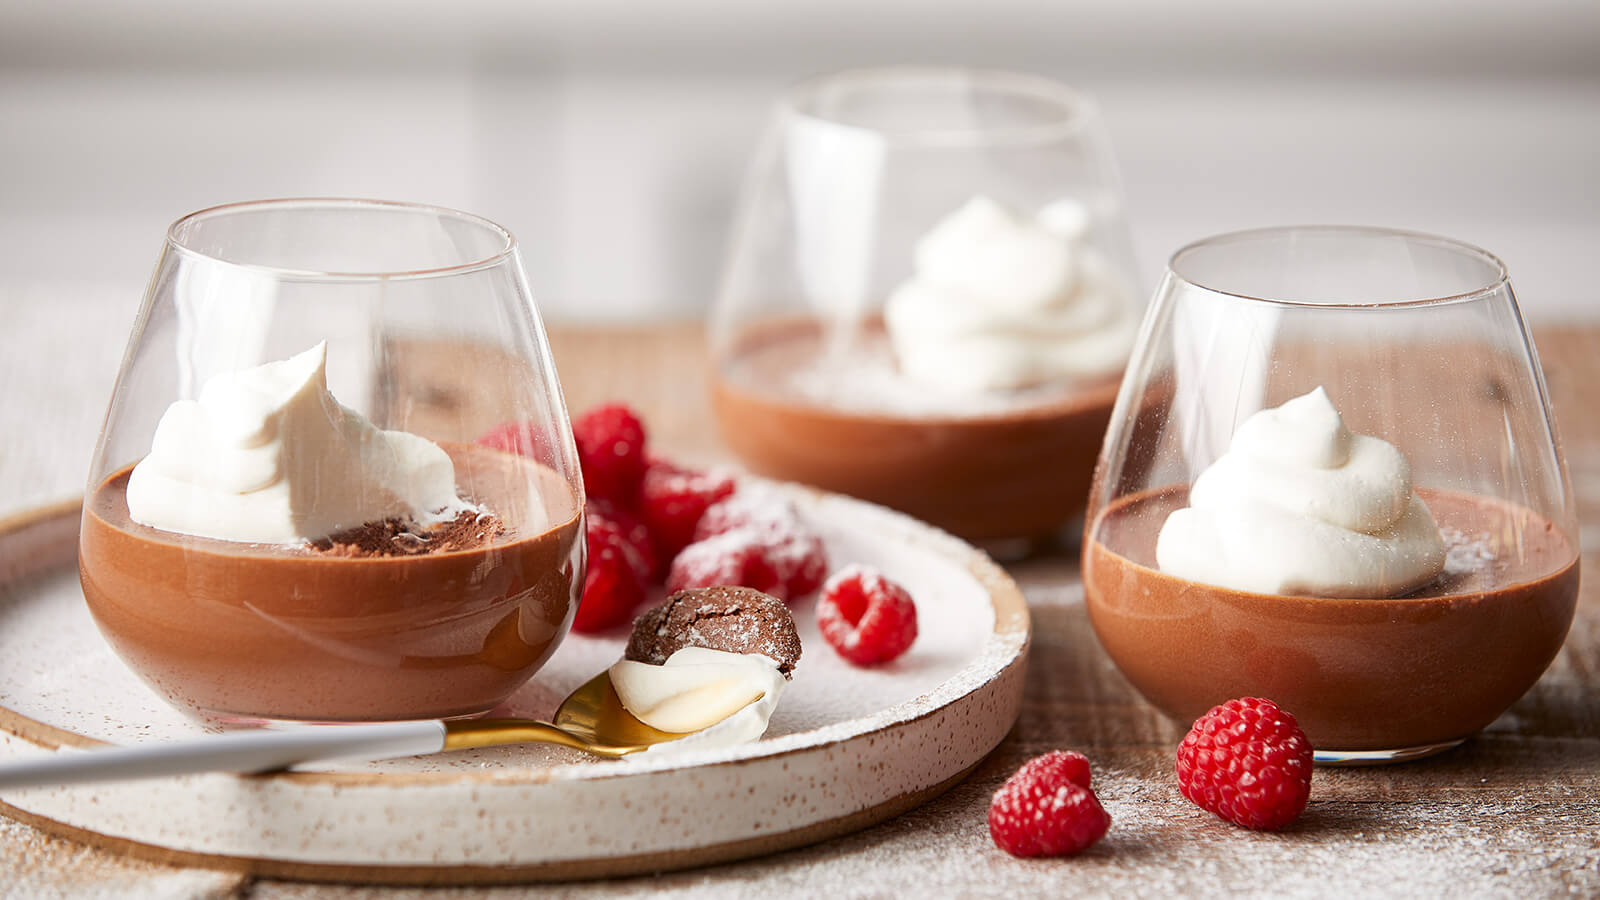 Sugar Free Dark Chocolate Mousse